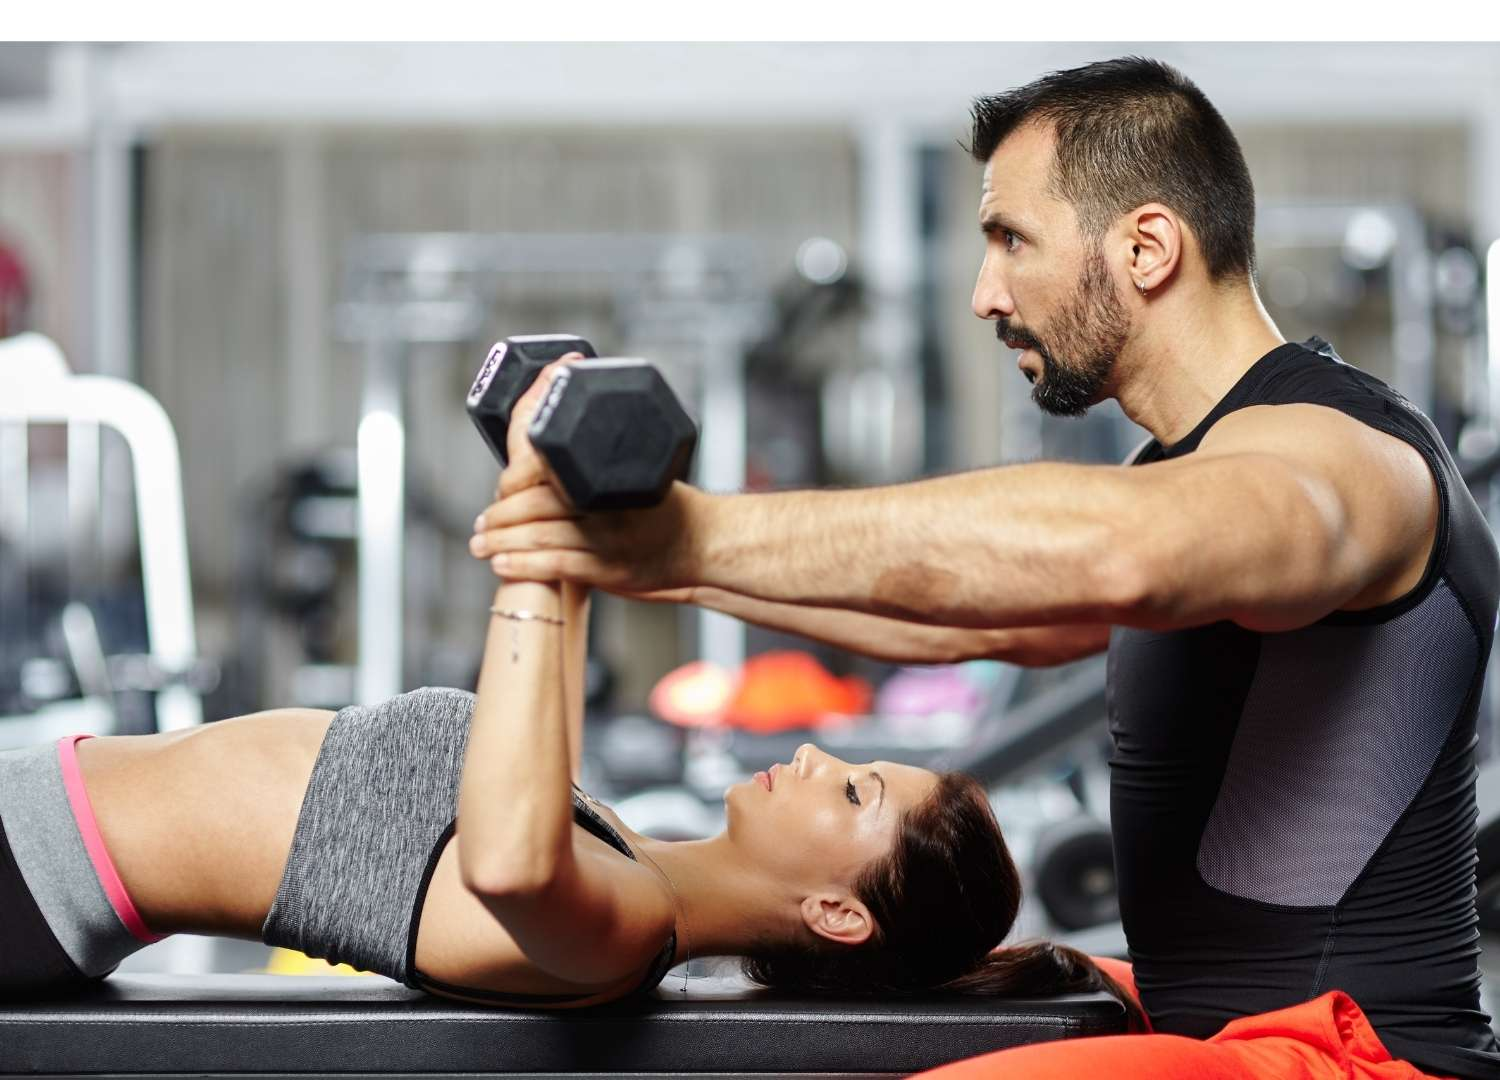 Instructor helping out a woman in weight lifting